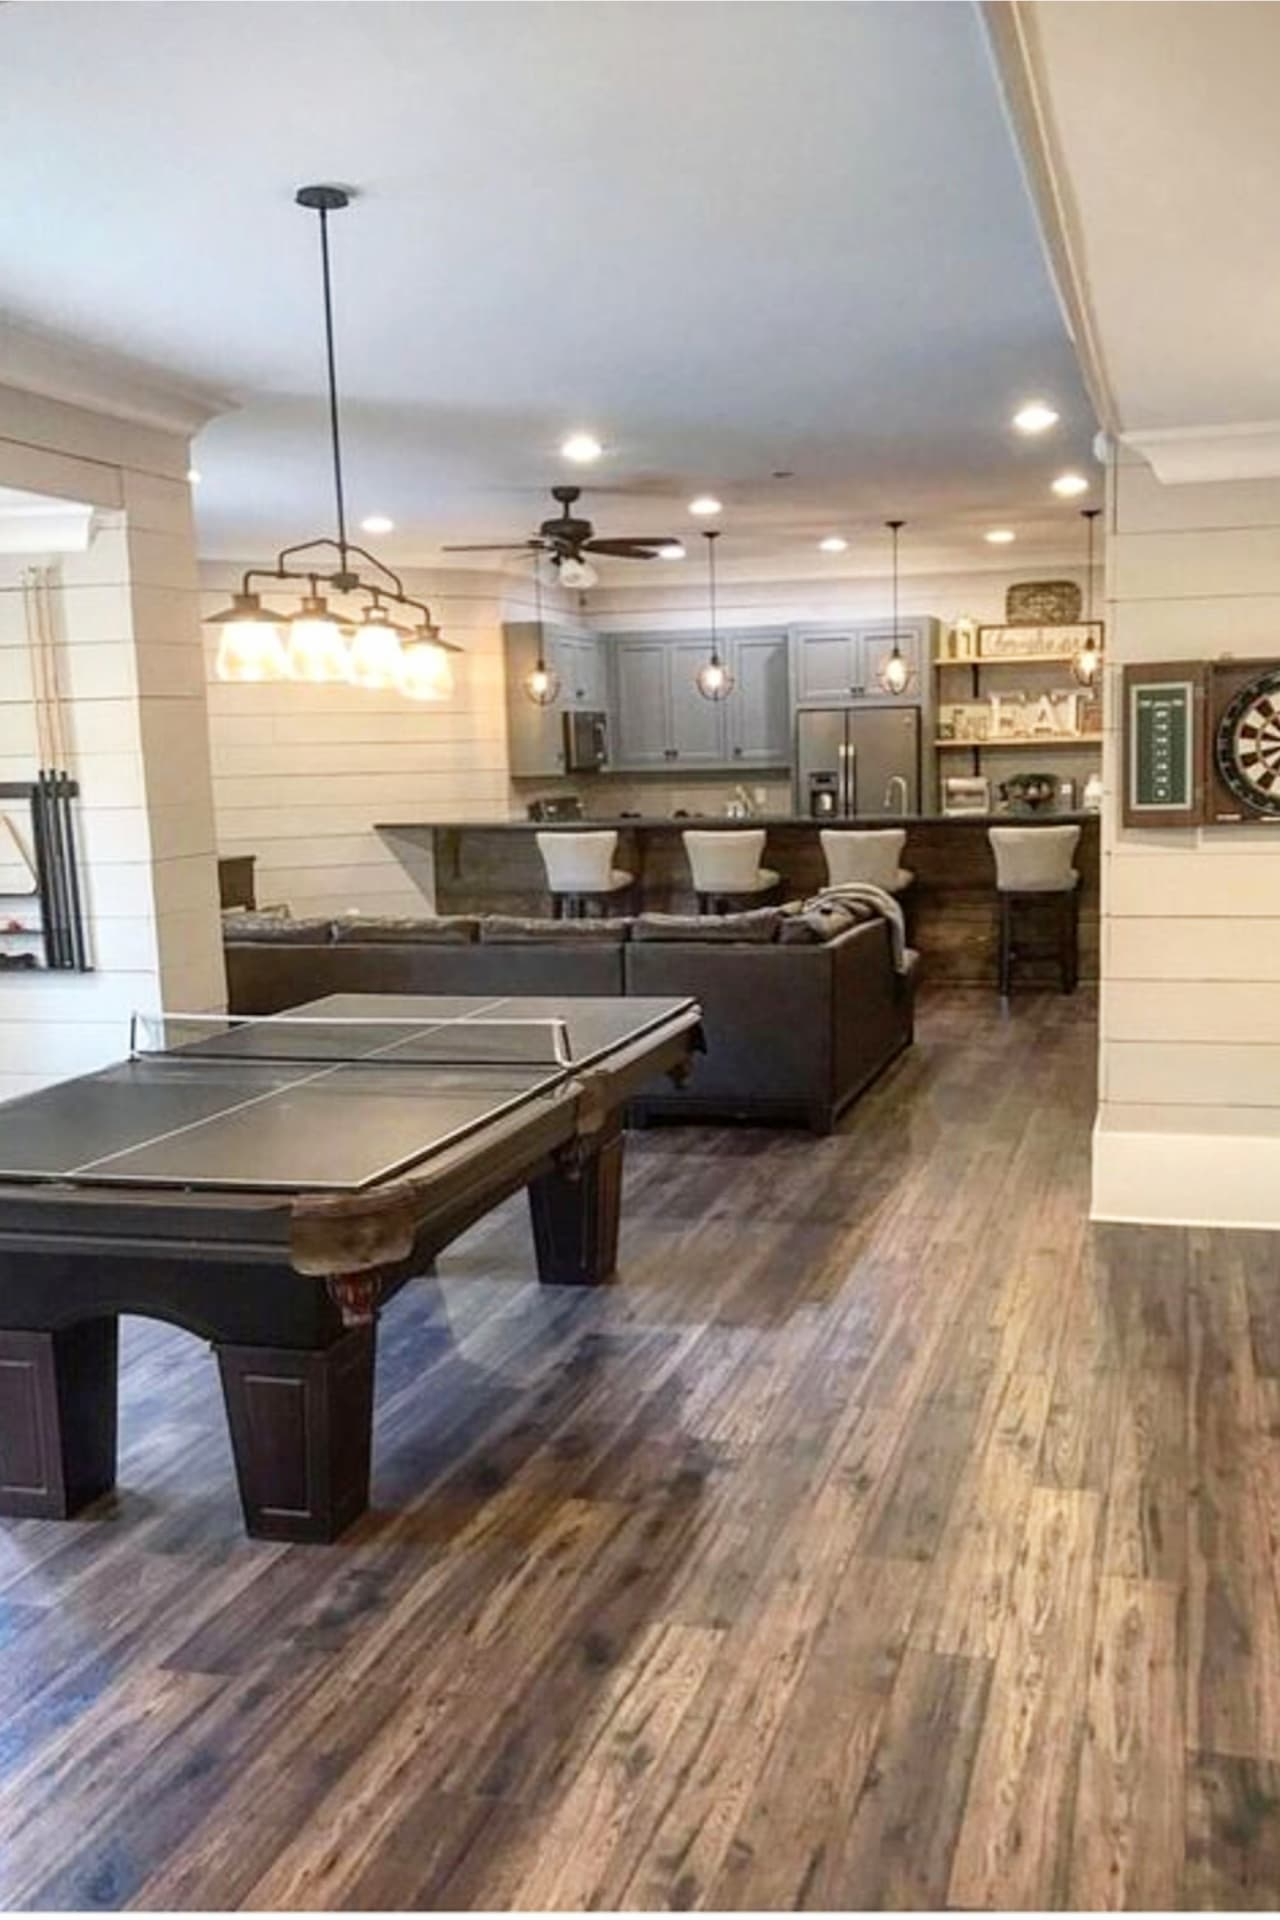 Finished farmhouse basement ideas - basement bar area, den area and game / rec room area.  Basement Ideas!  Gorgeous DIY finished basement ideas on a budget - partially finished basement ideas and small basement decor ideas for finishing and decorating a basement on a budget